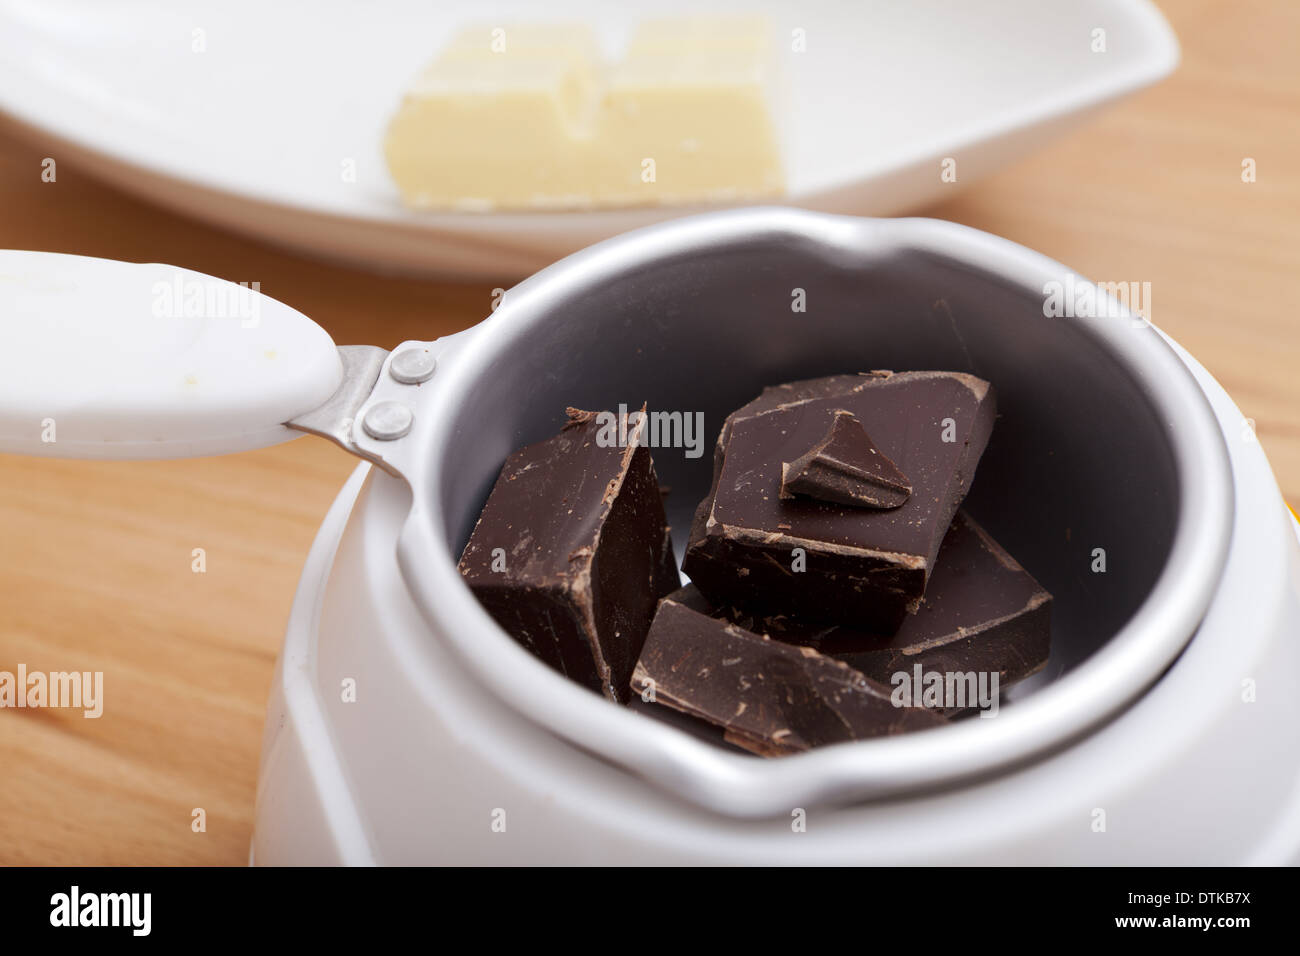 Chocolate Melting Pot Filled With Brown Chocolate Stock